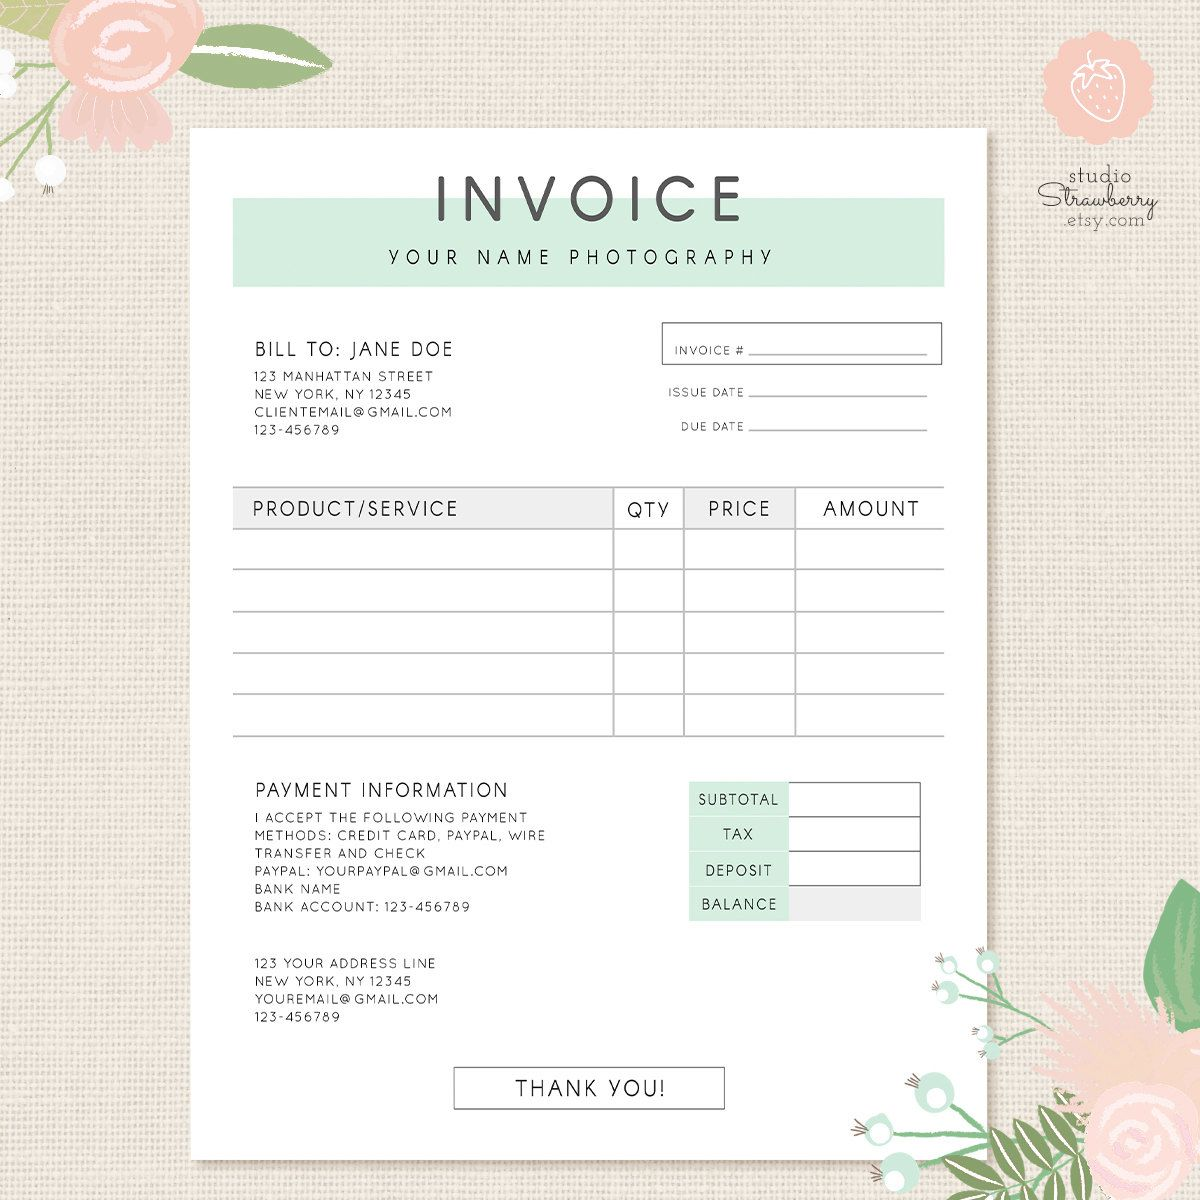 Invoice Template Photography Invoice Business Invoice Receipt - Invoice forms templates free best online gun store